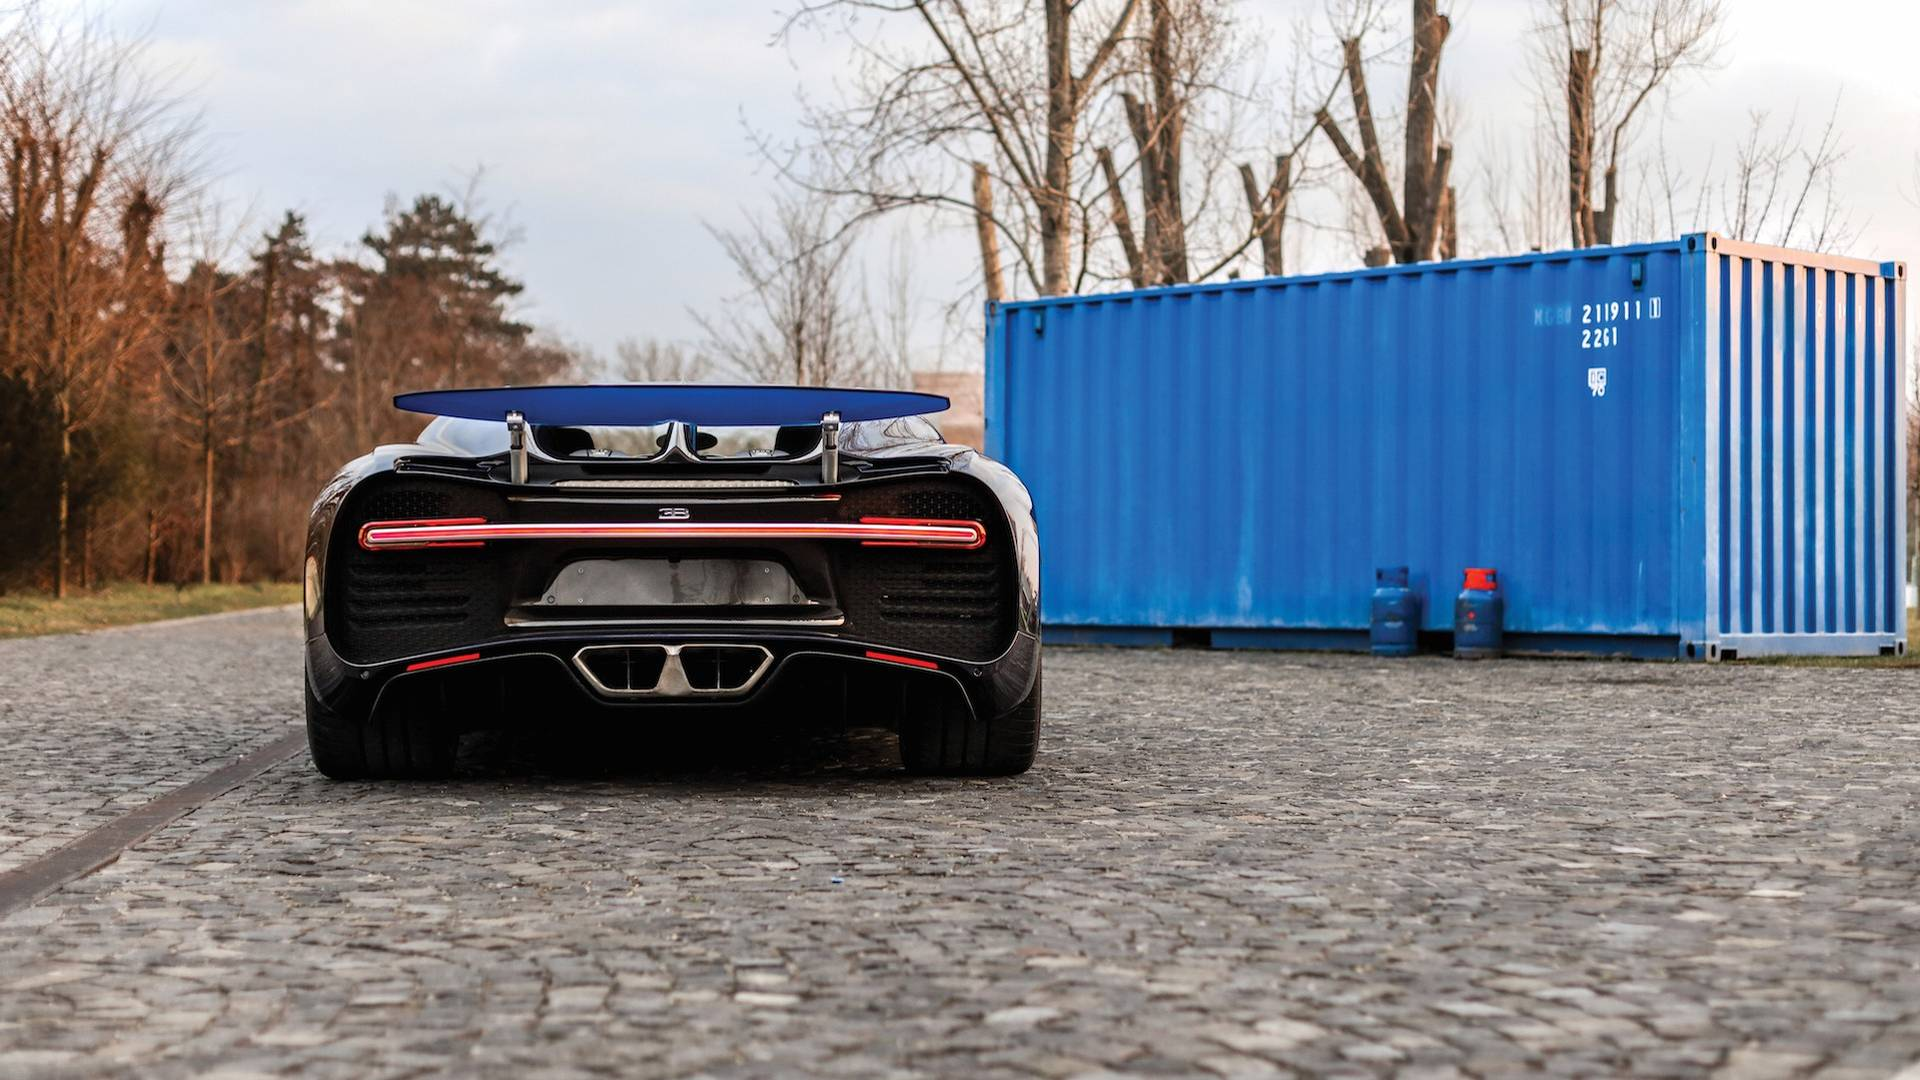 Already There's A Bugatti Chiron Heading To Auction [UPDATE]